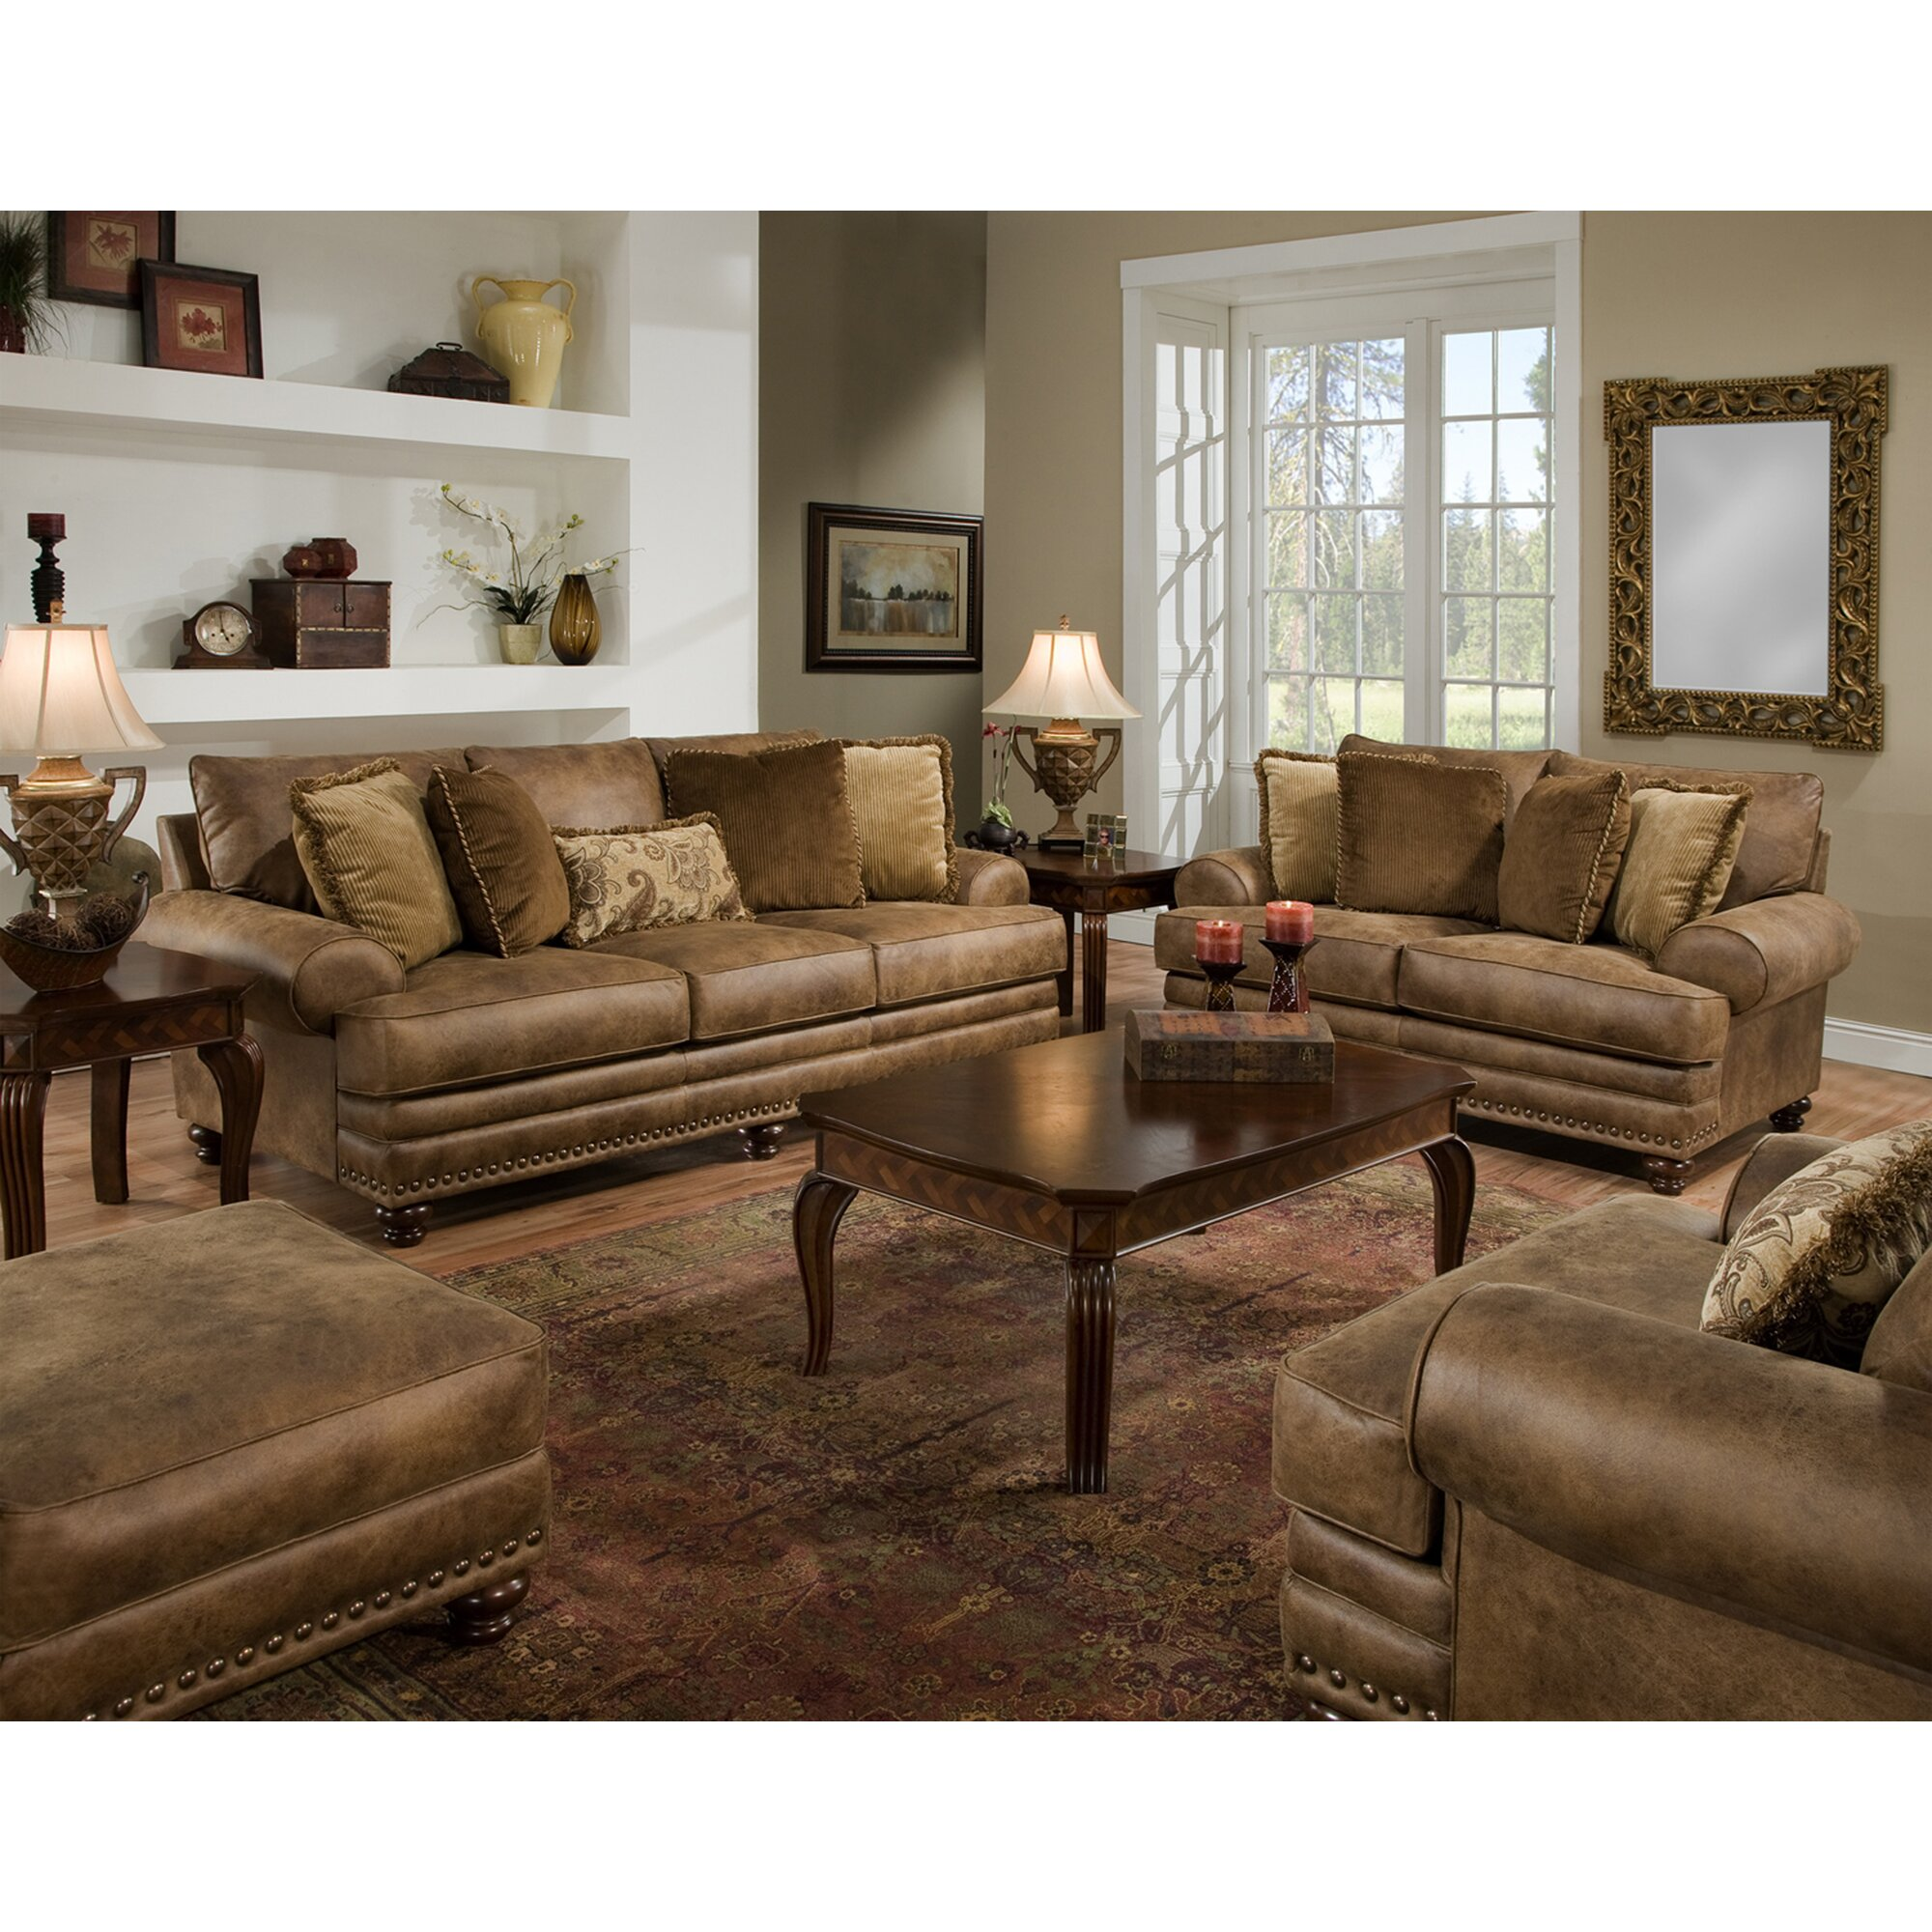 Living Room Sets Youll Love Wayfair - Best living room sets